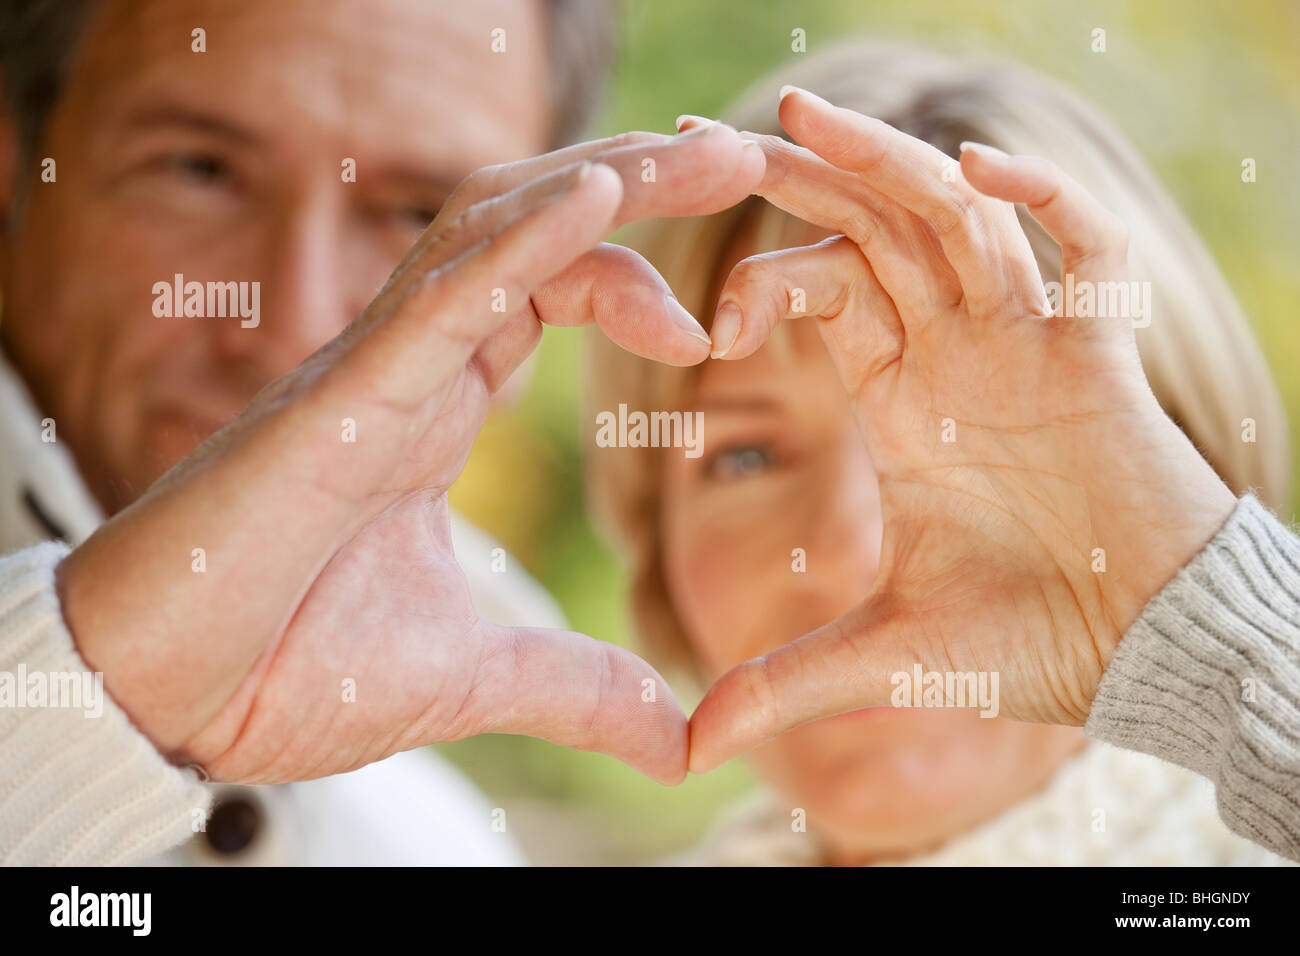 Couple forming heart with their fingers - Stock Image